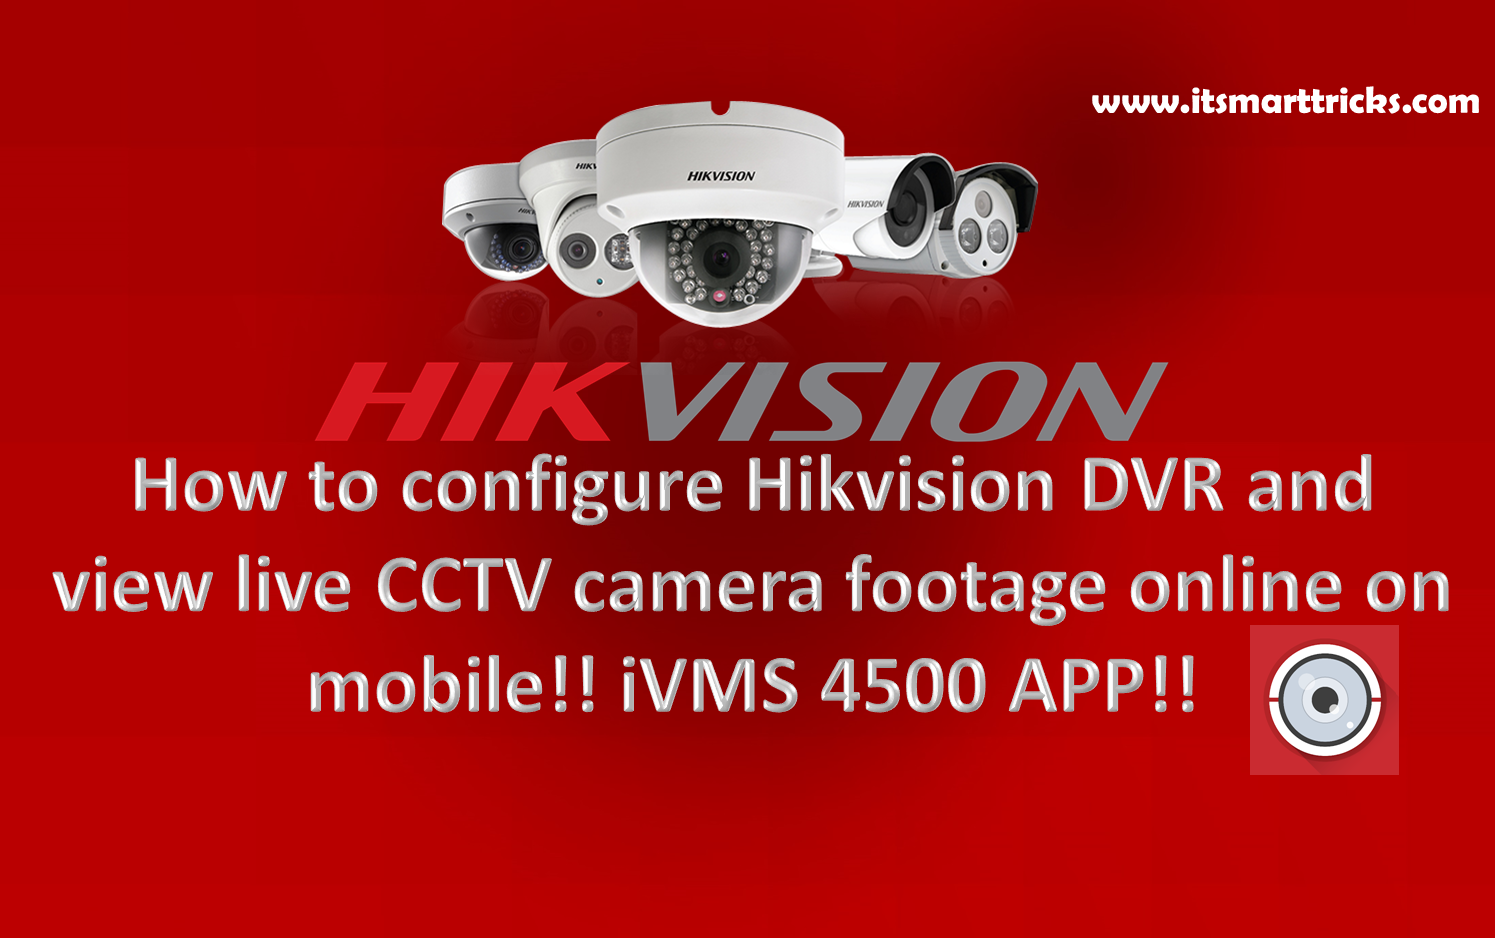 How to configure Hikvision DVR and view live CCTV camera footage online on mobile!! iVMS 4500 APP